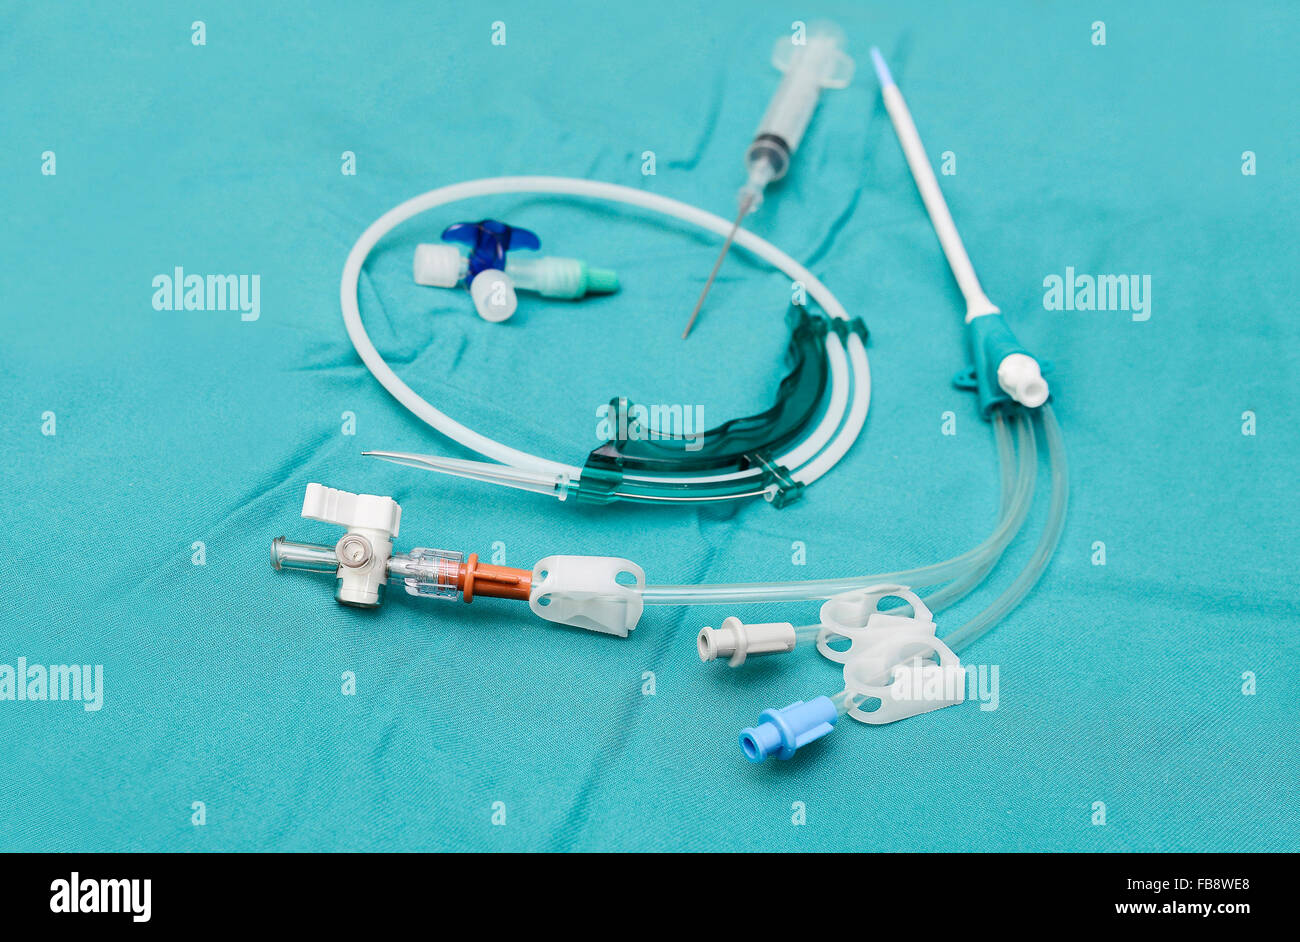 Central venous catheter with guide wire,plastic sheat, needle and syringe - Stock Image